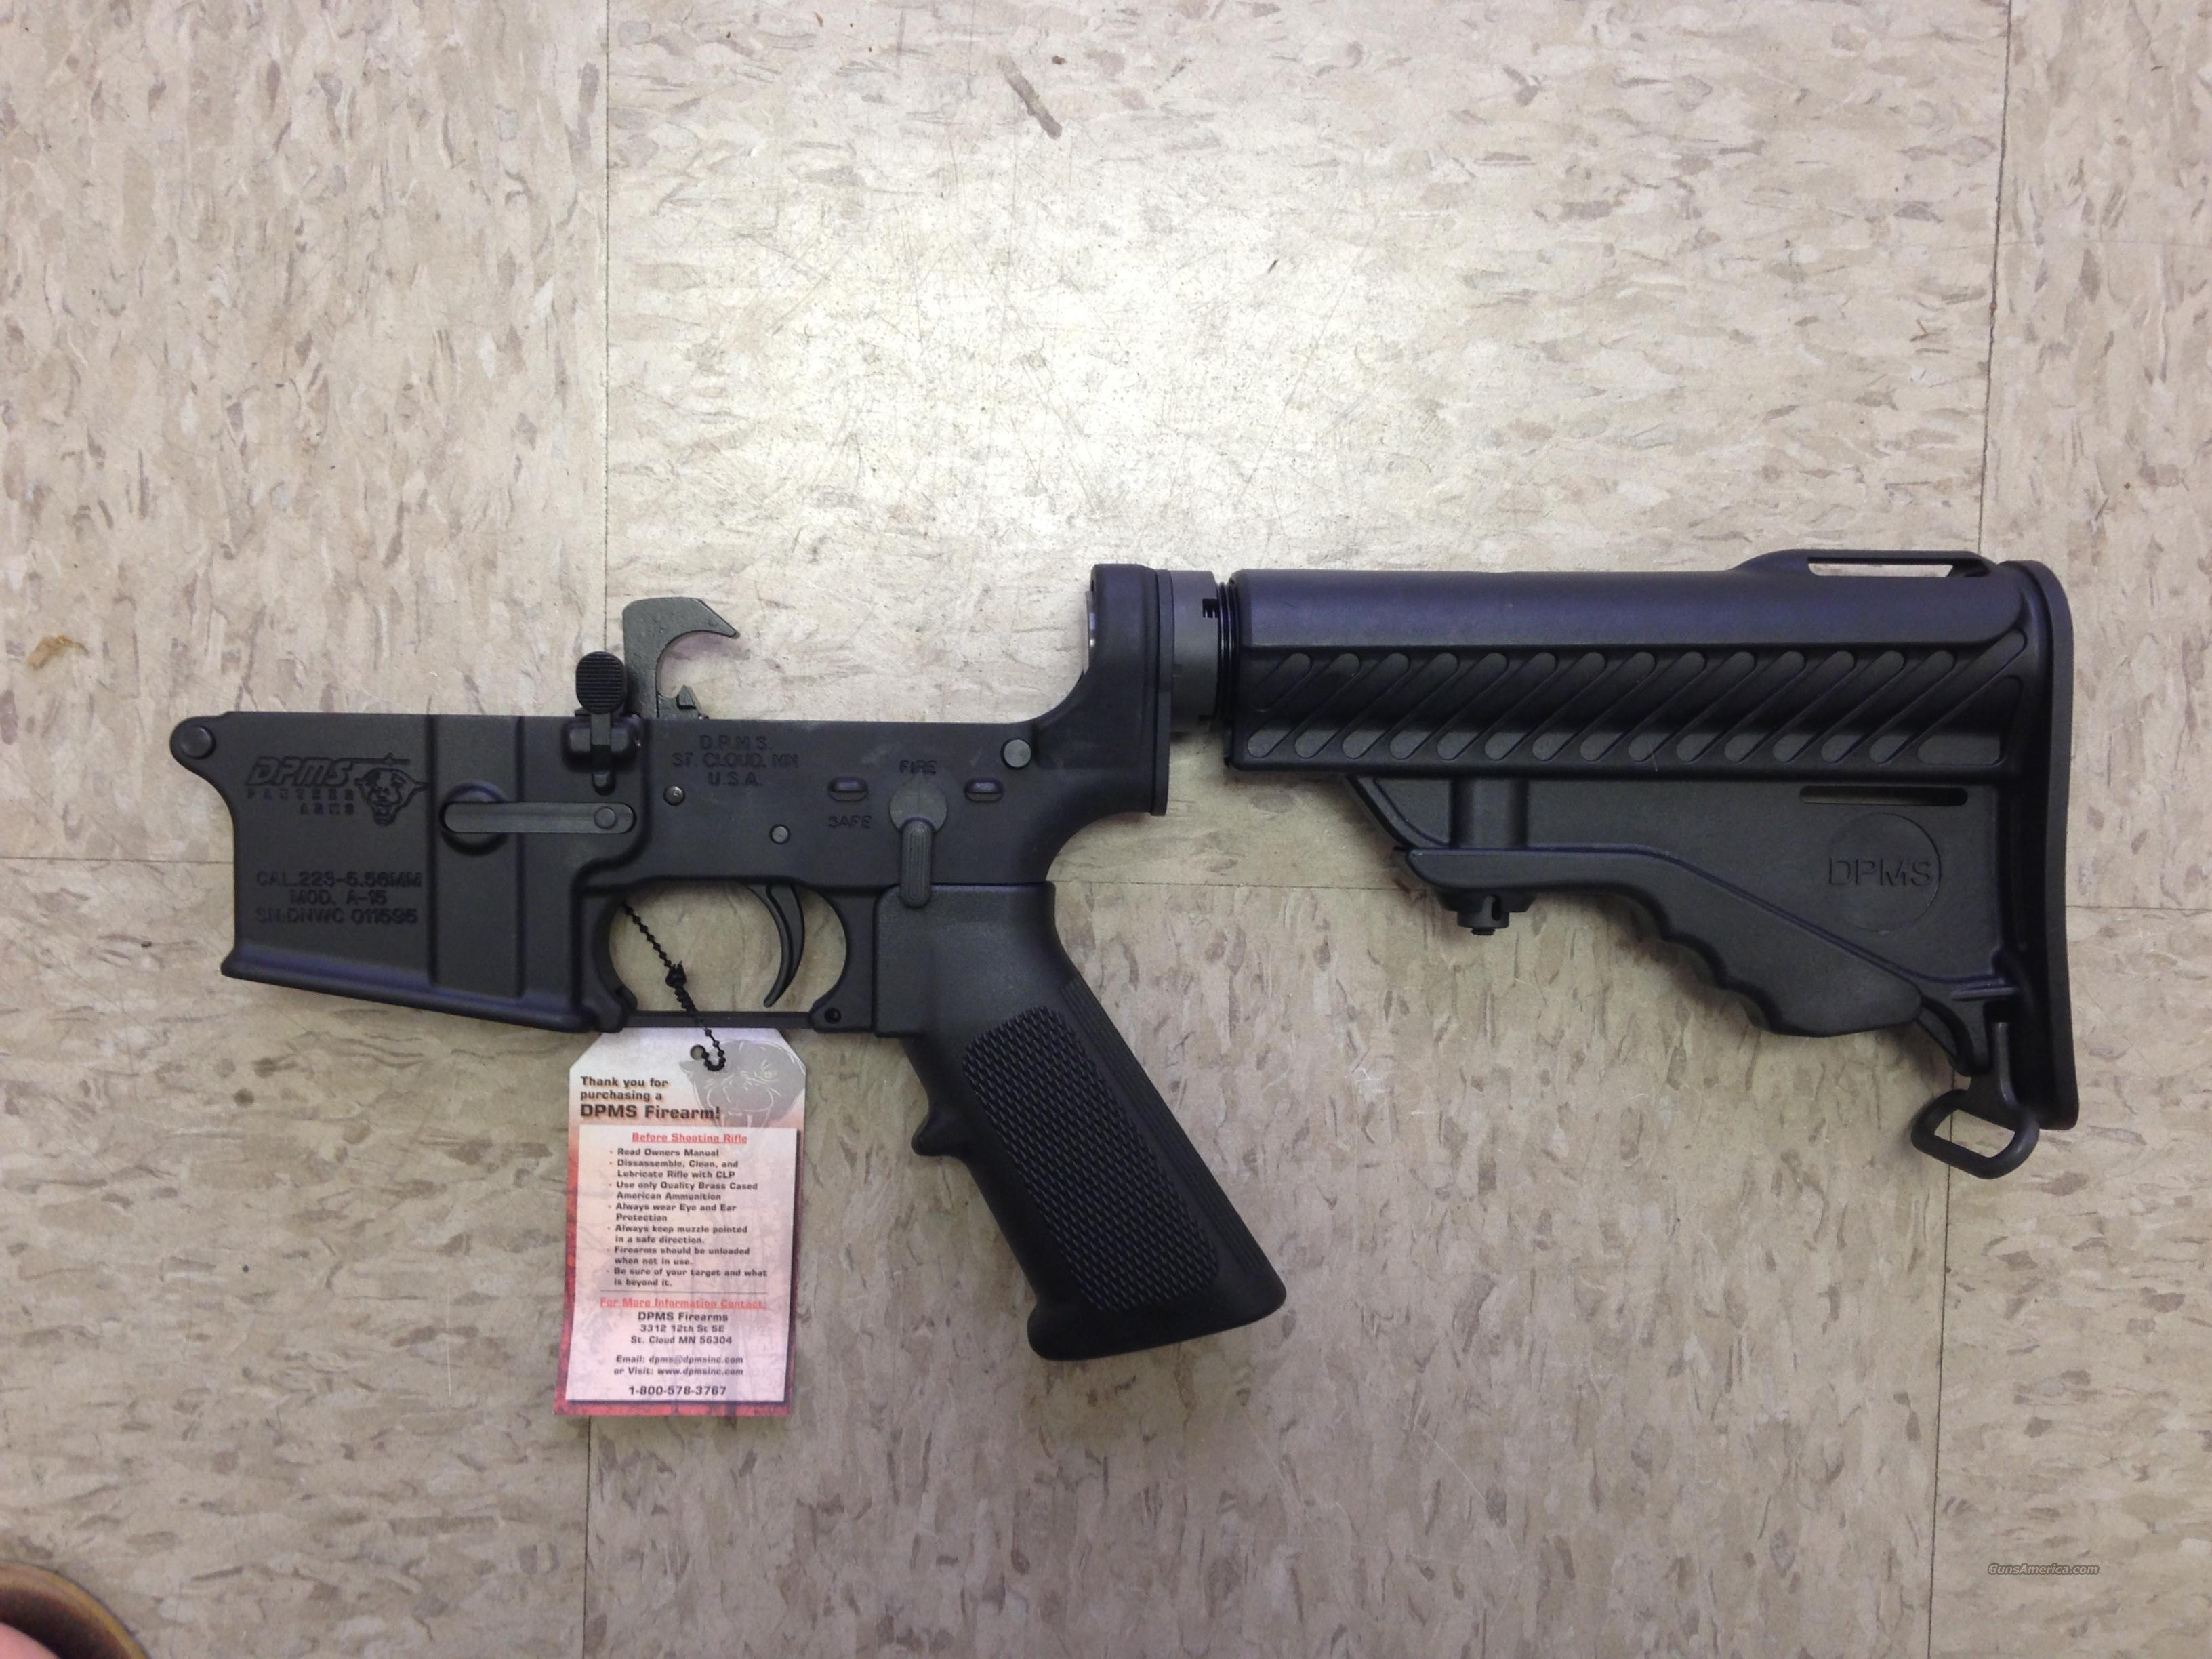 dpms panther ar 15 complete lower receiver for sale rh gunsamerica com dpms panther arms model a-15 owners manual DPMS AR-15 Accessories